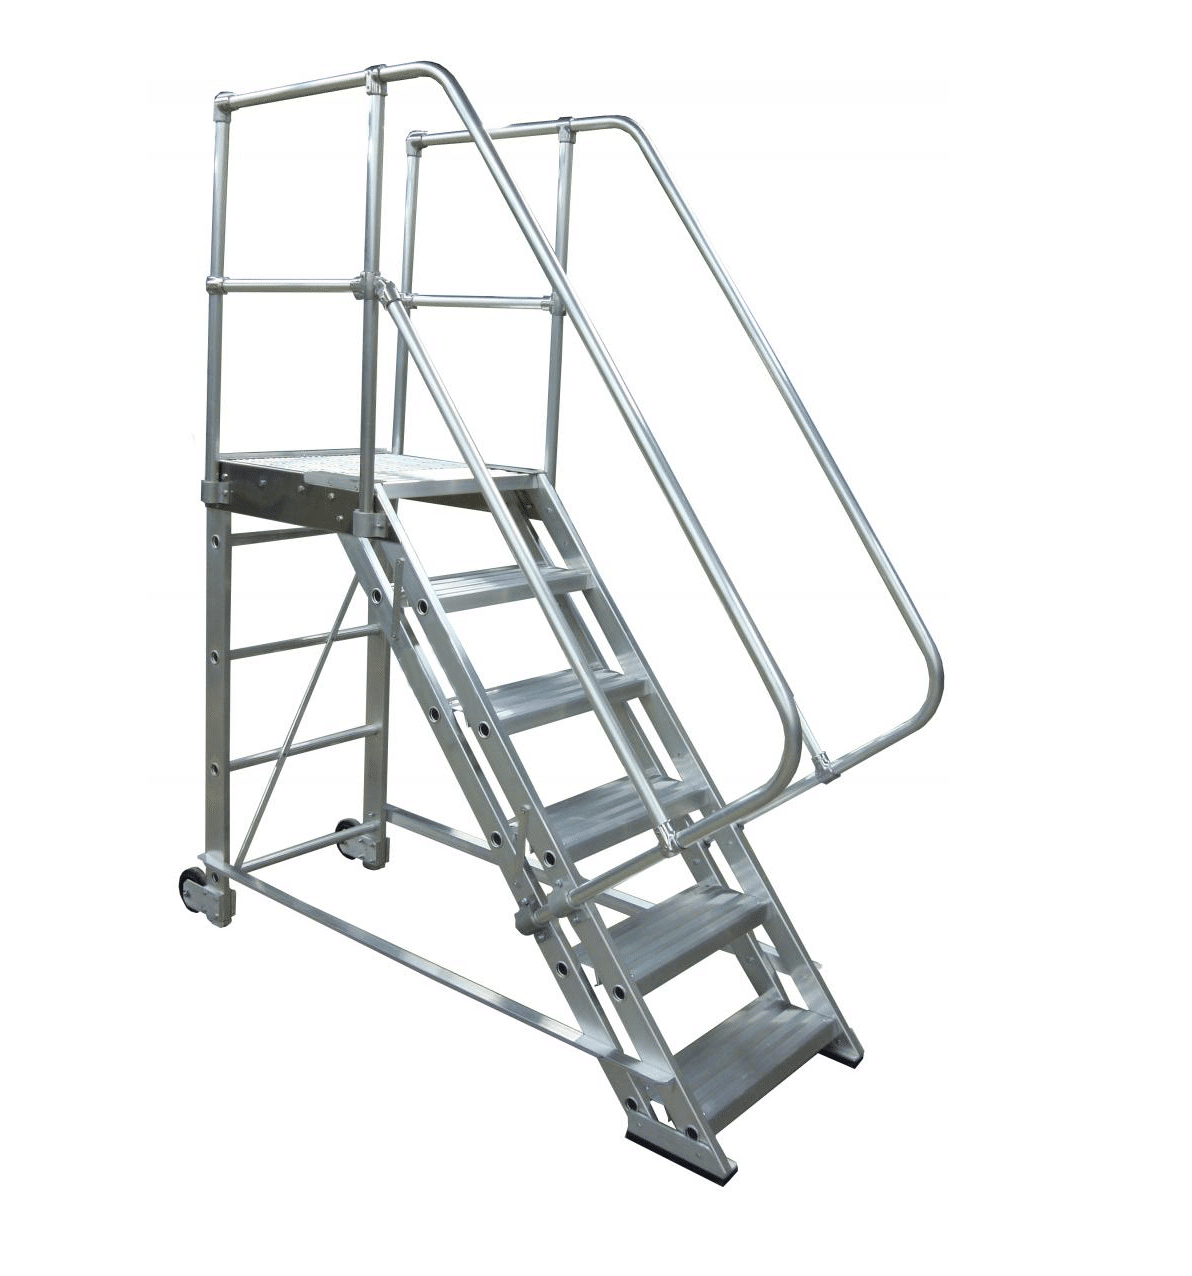 Incroyable Rolling Platform Ladders · Rolling Aluminum Stairs